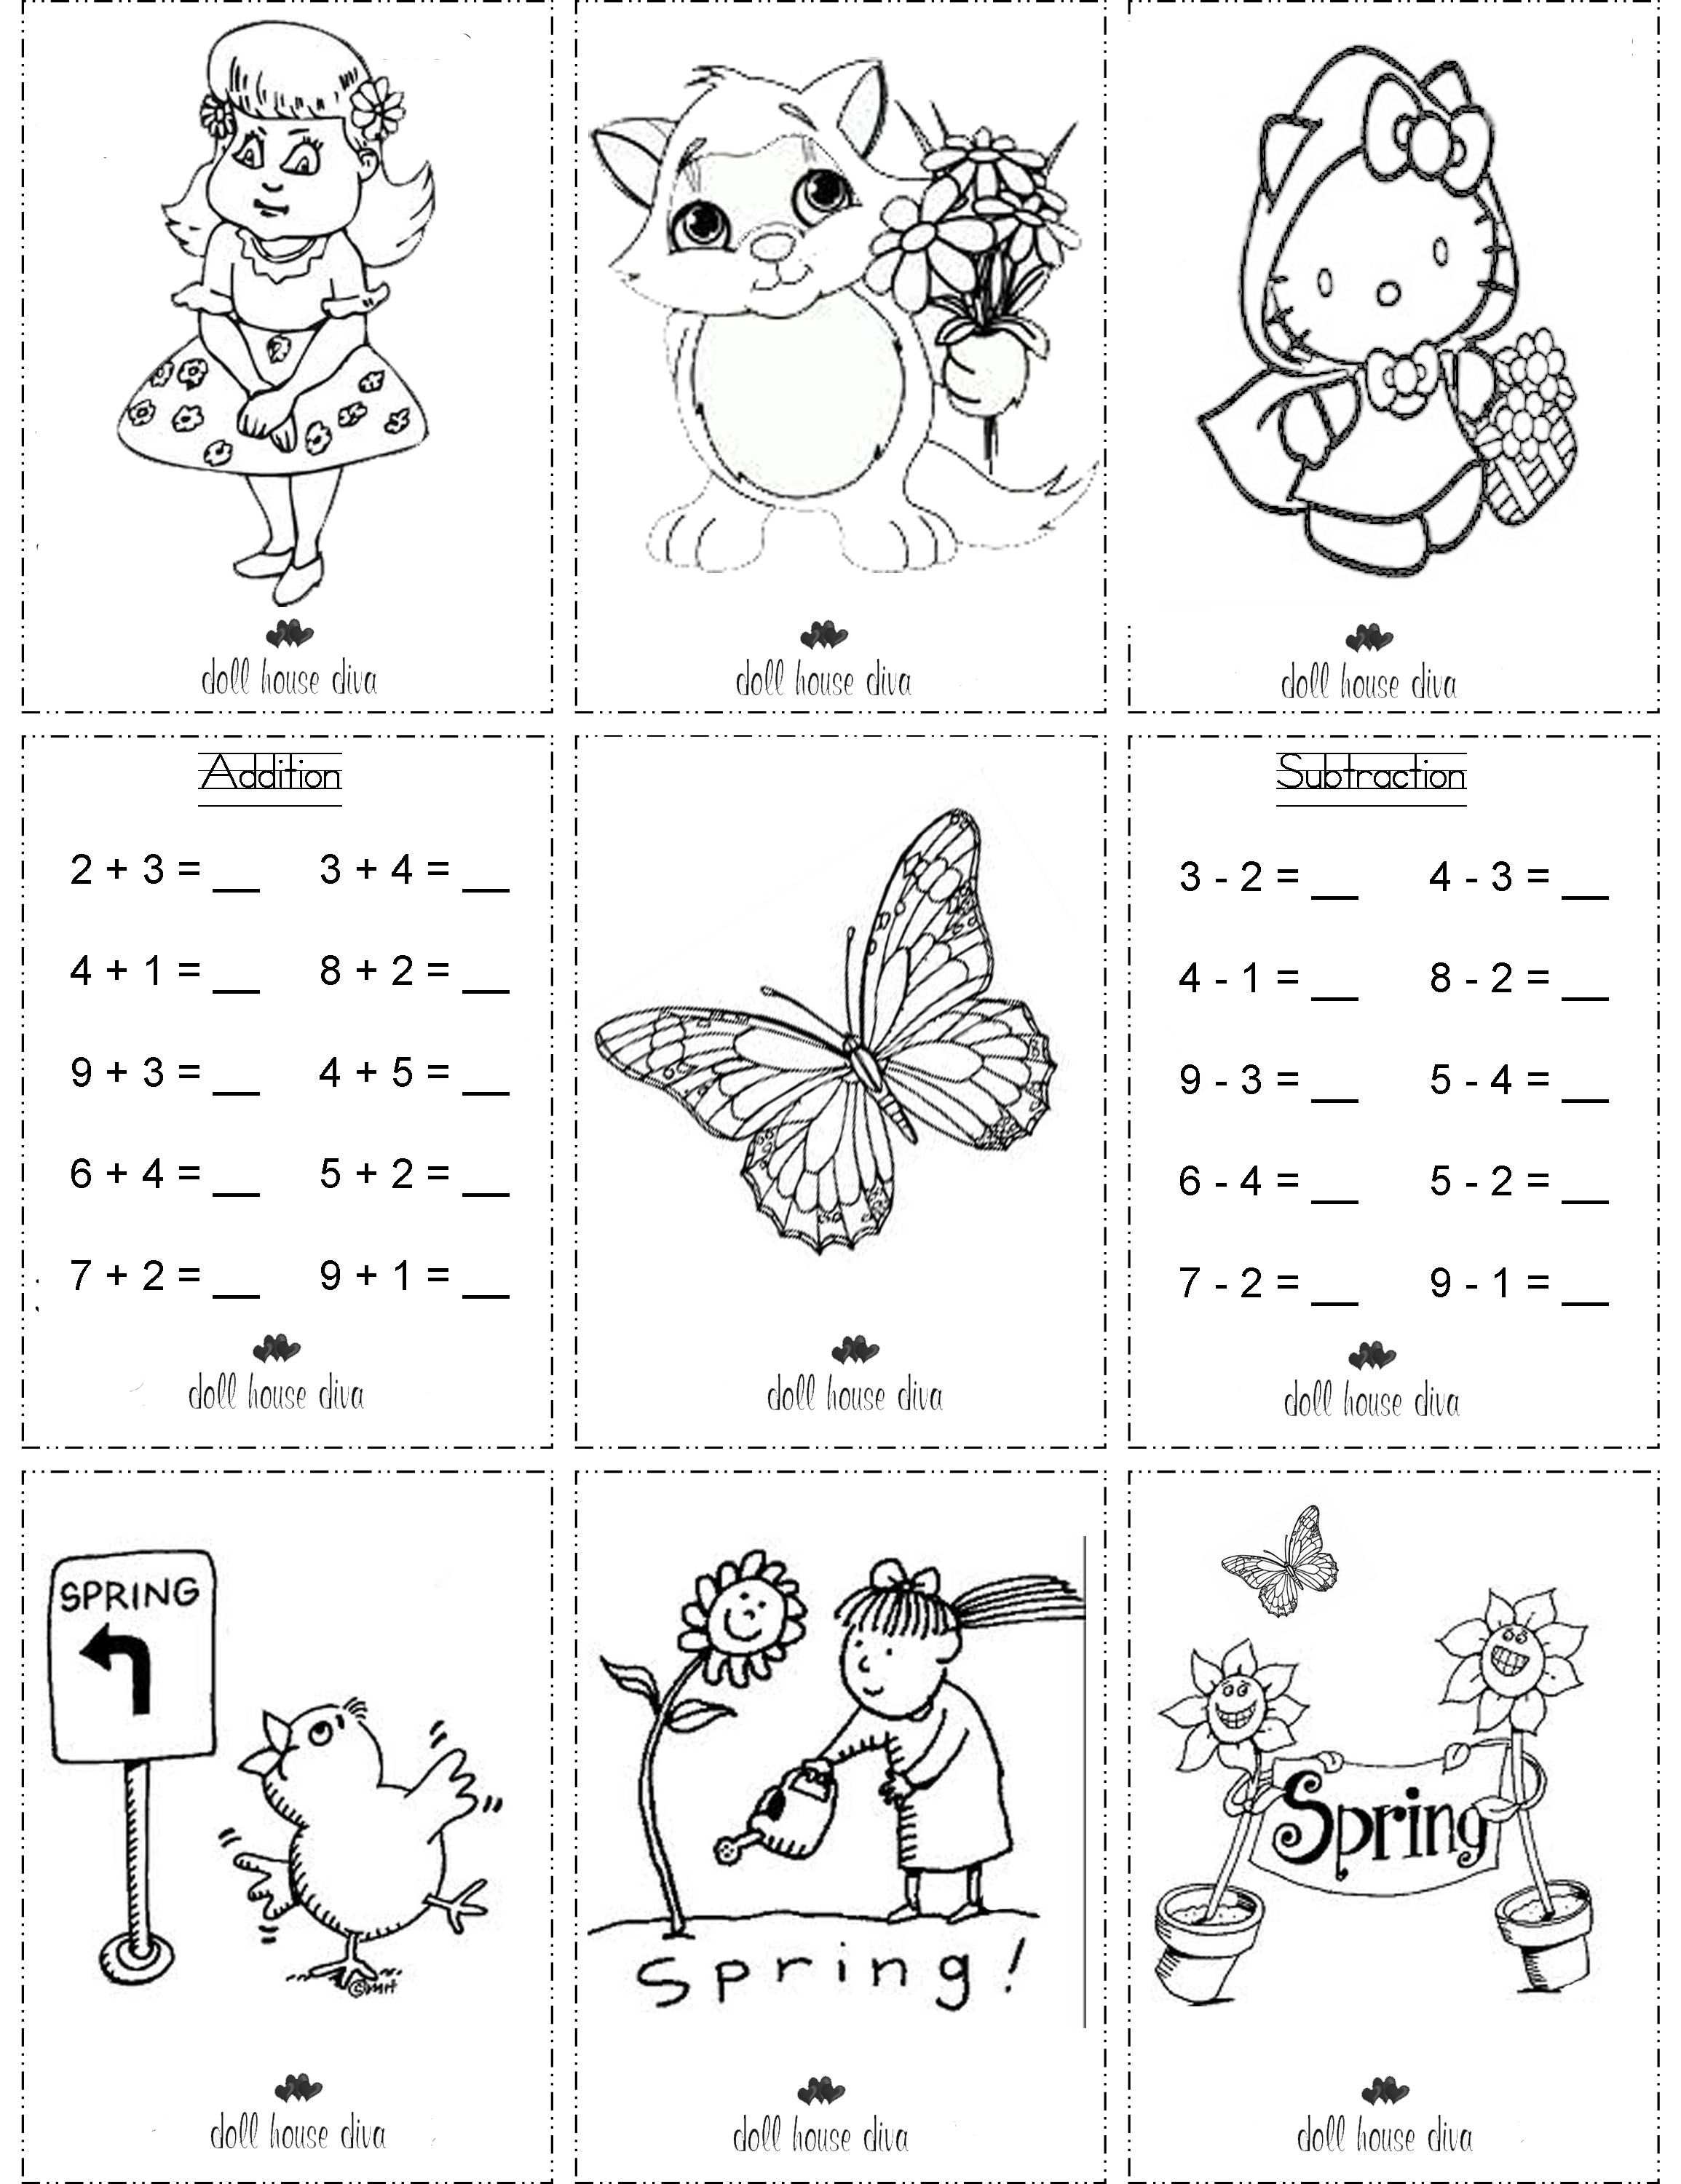 AG Doll School Printables Printable Colouring Pages for